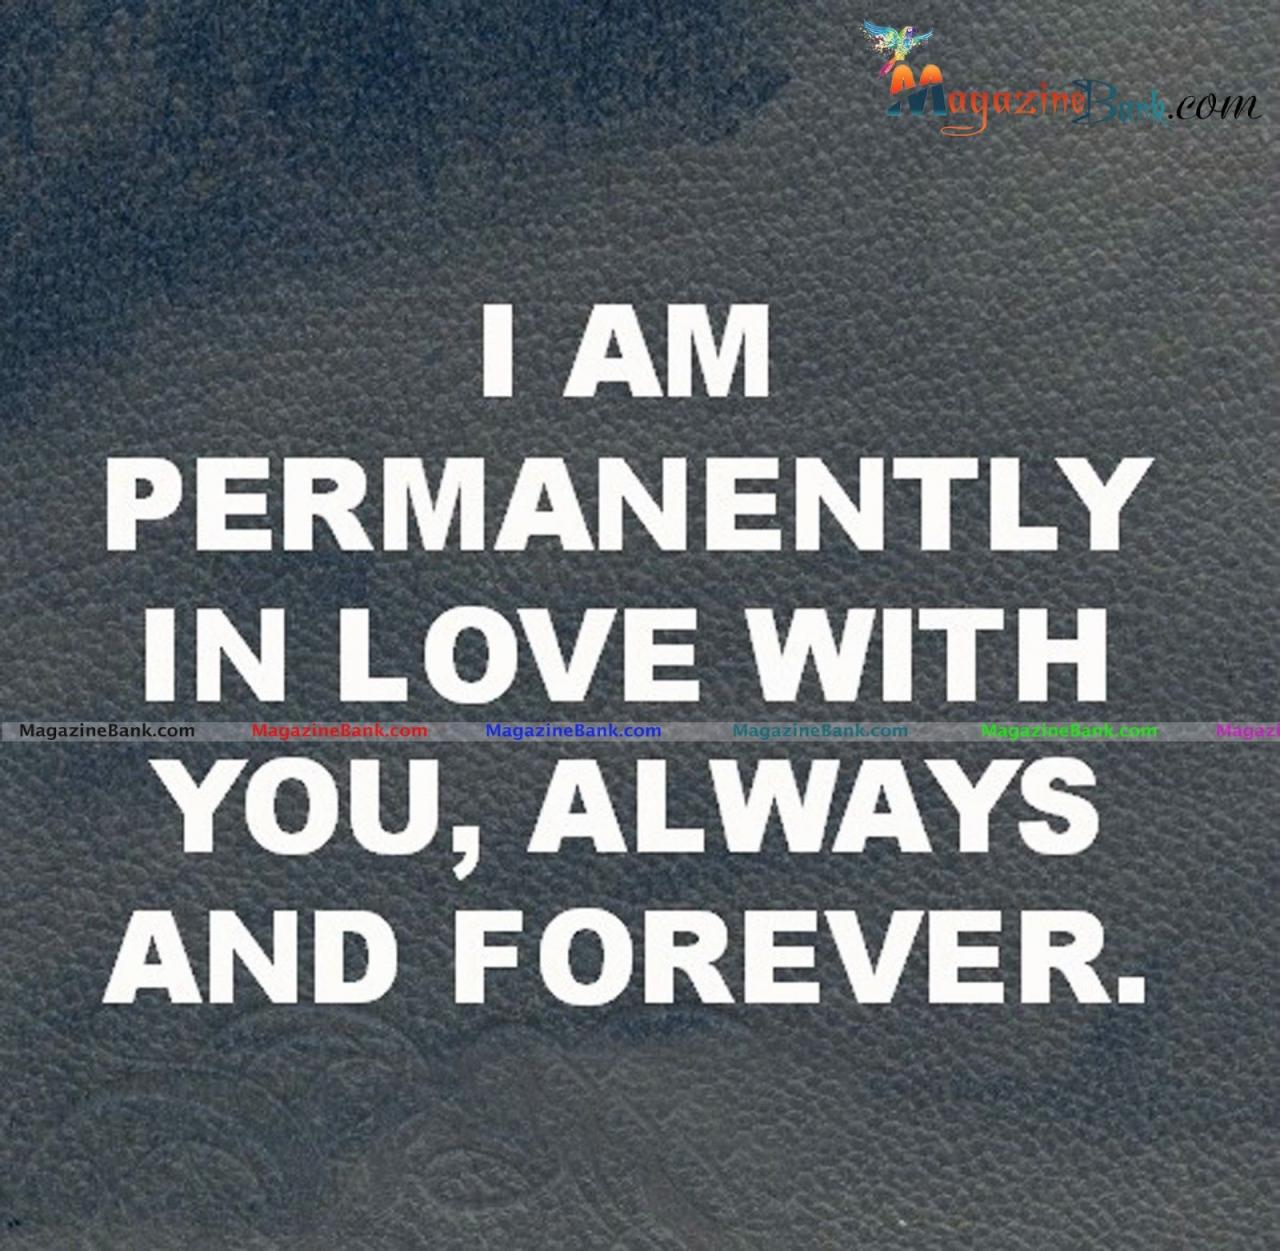 I Love You Forever Quotes For Him Tumblr Image Quotes At